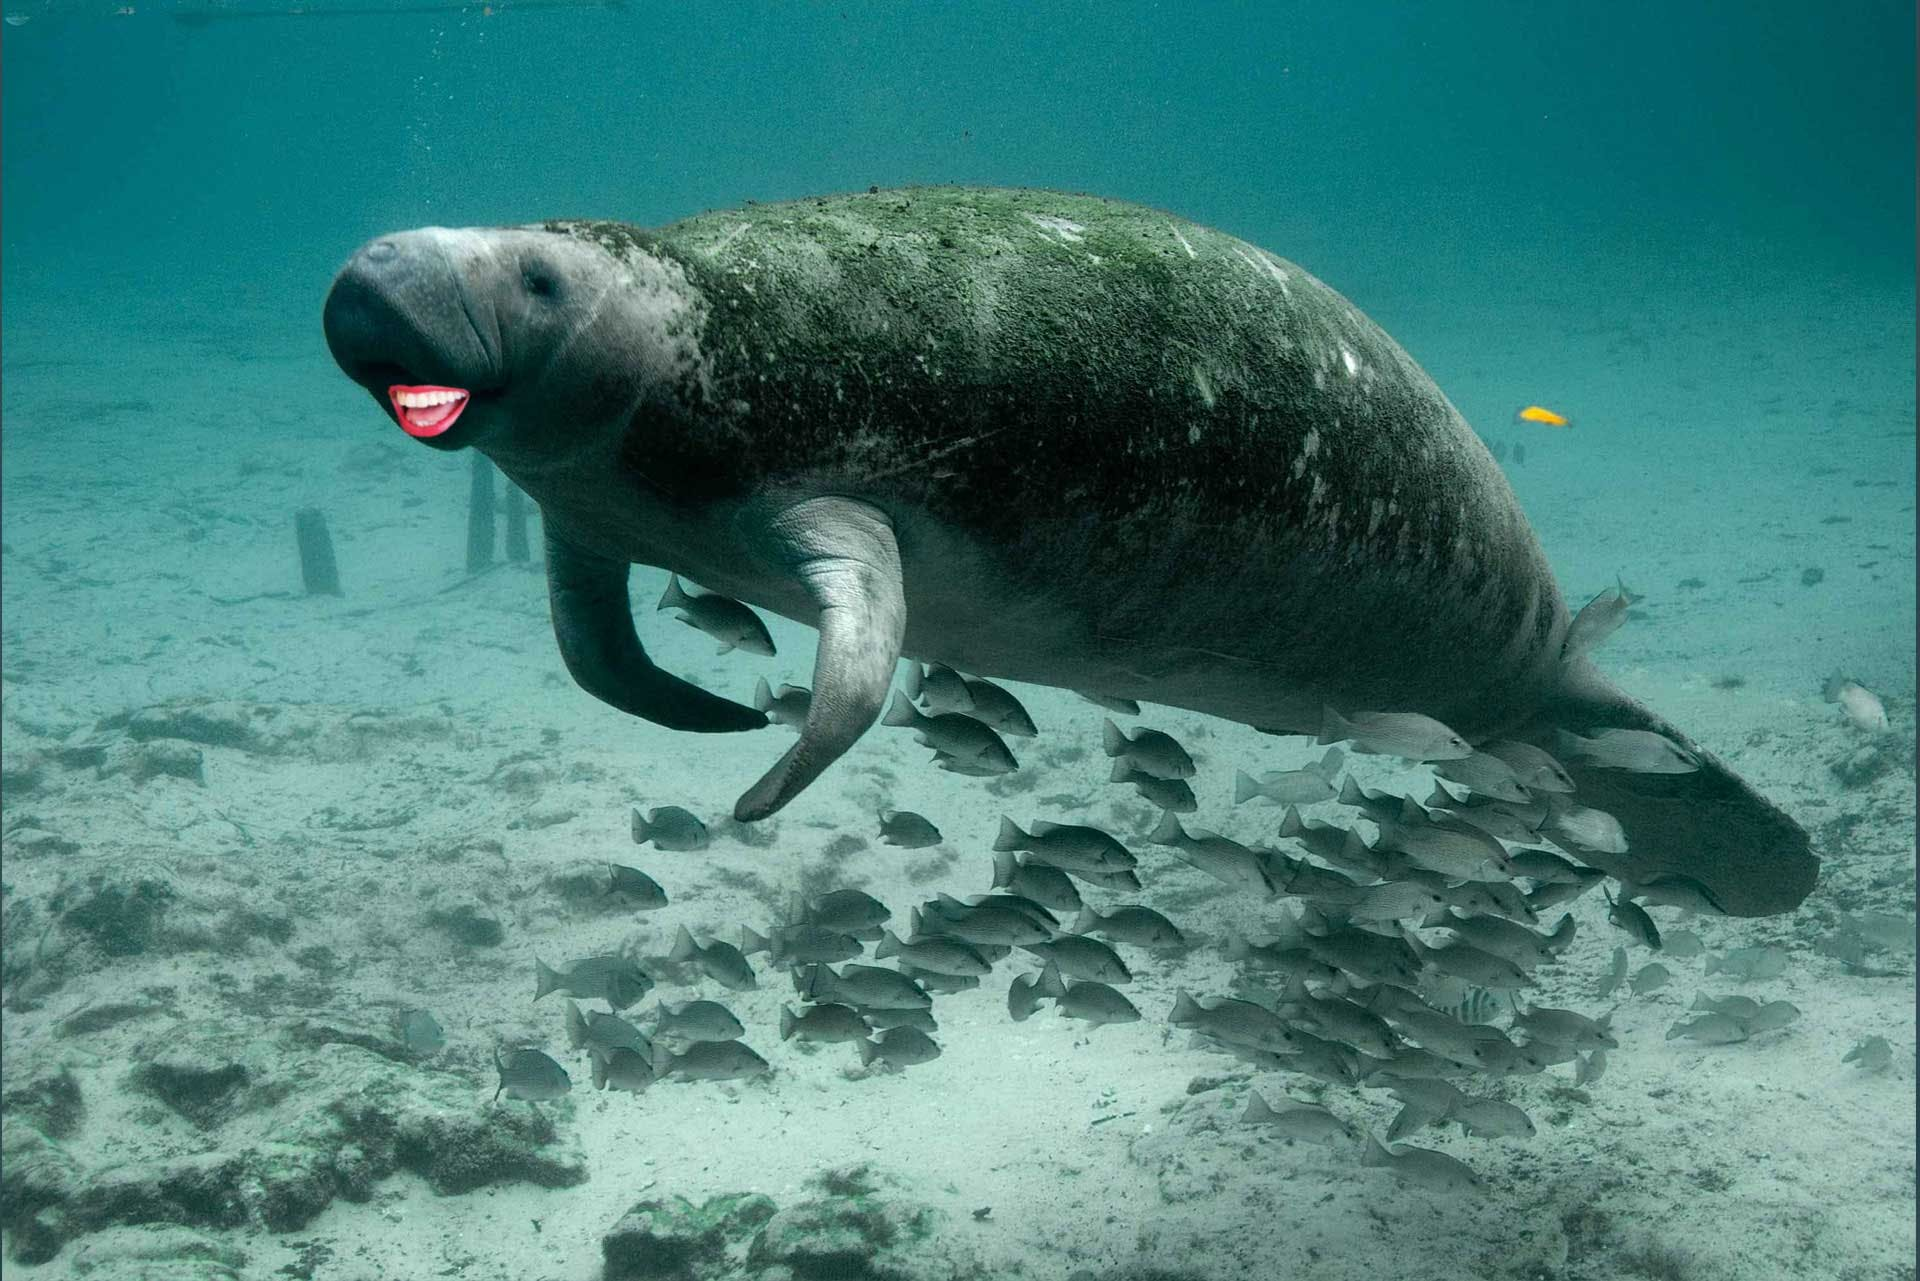 Manatee with human mouth